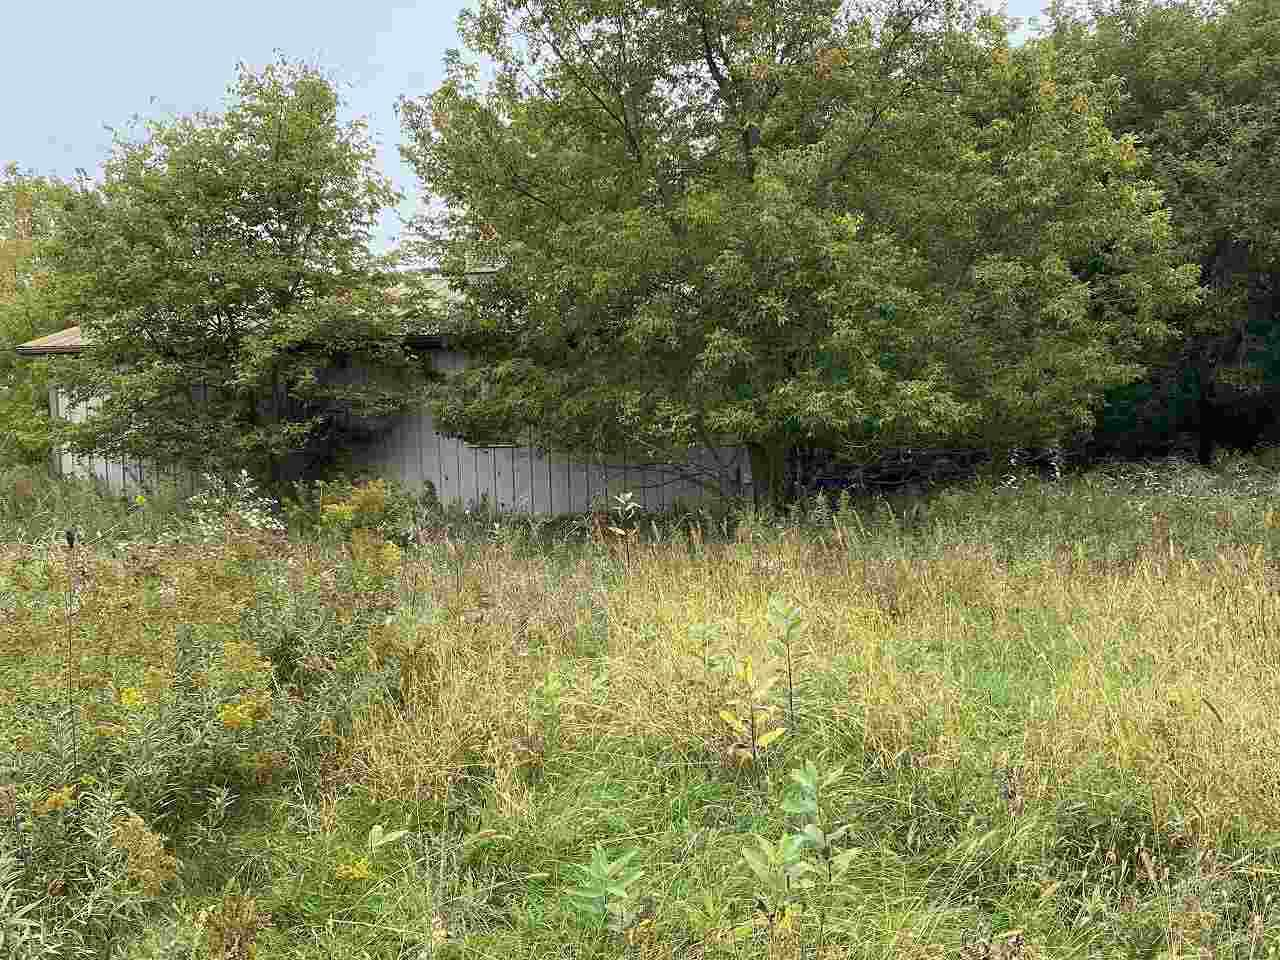 Old 26 Rd, Fort Atkinson, WI 53538